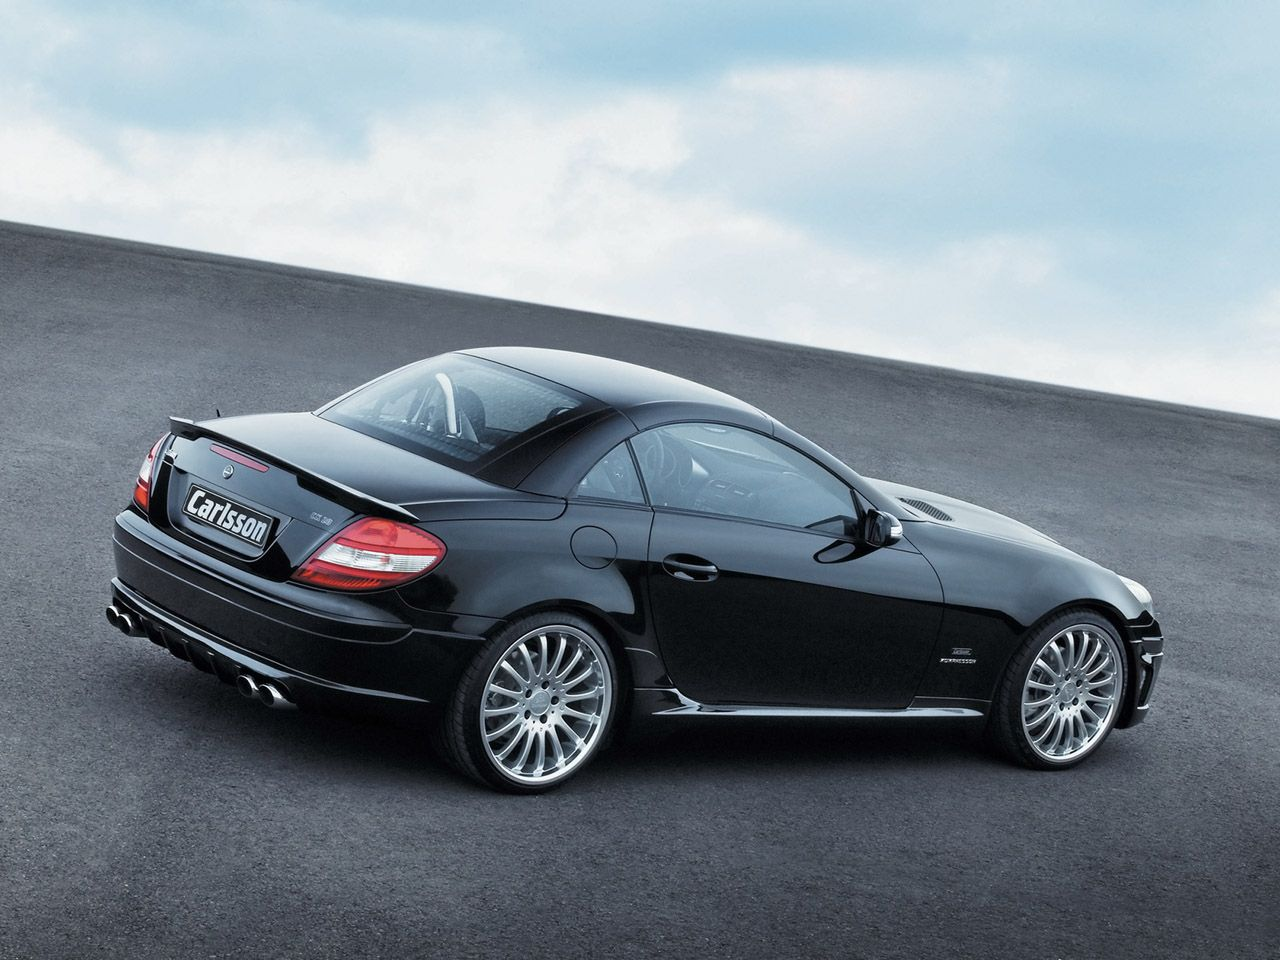 Mercedes benz slk 350 yum vroom vroom pinterest mercedes benz slk 350 mercedes benz slk and mercedes benz